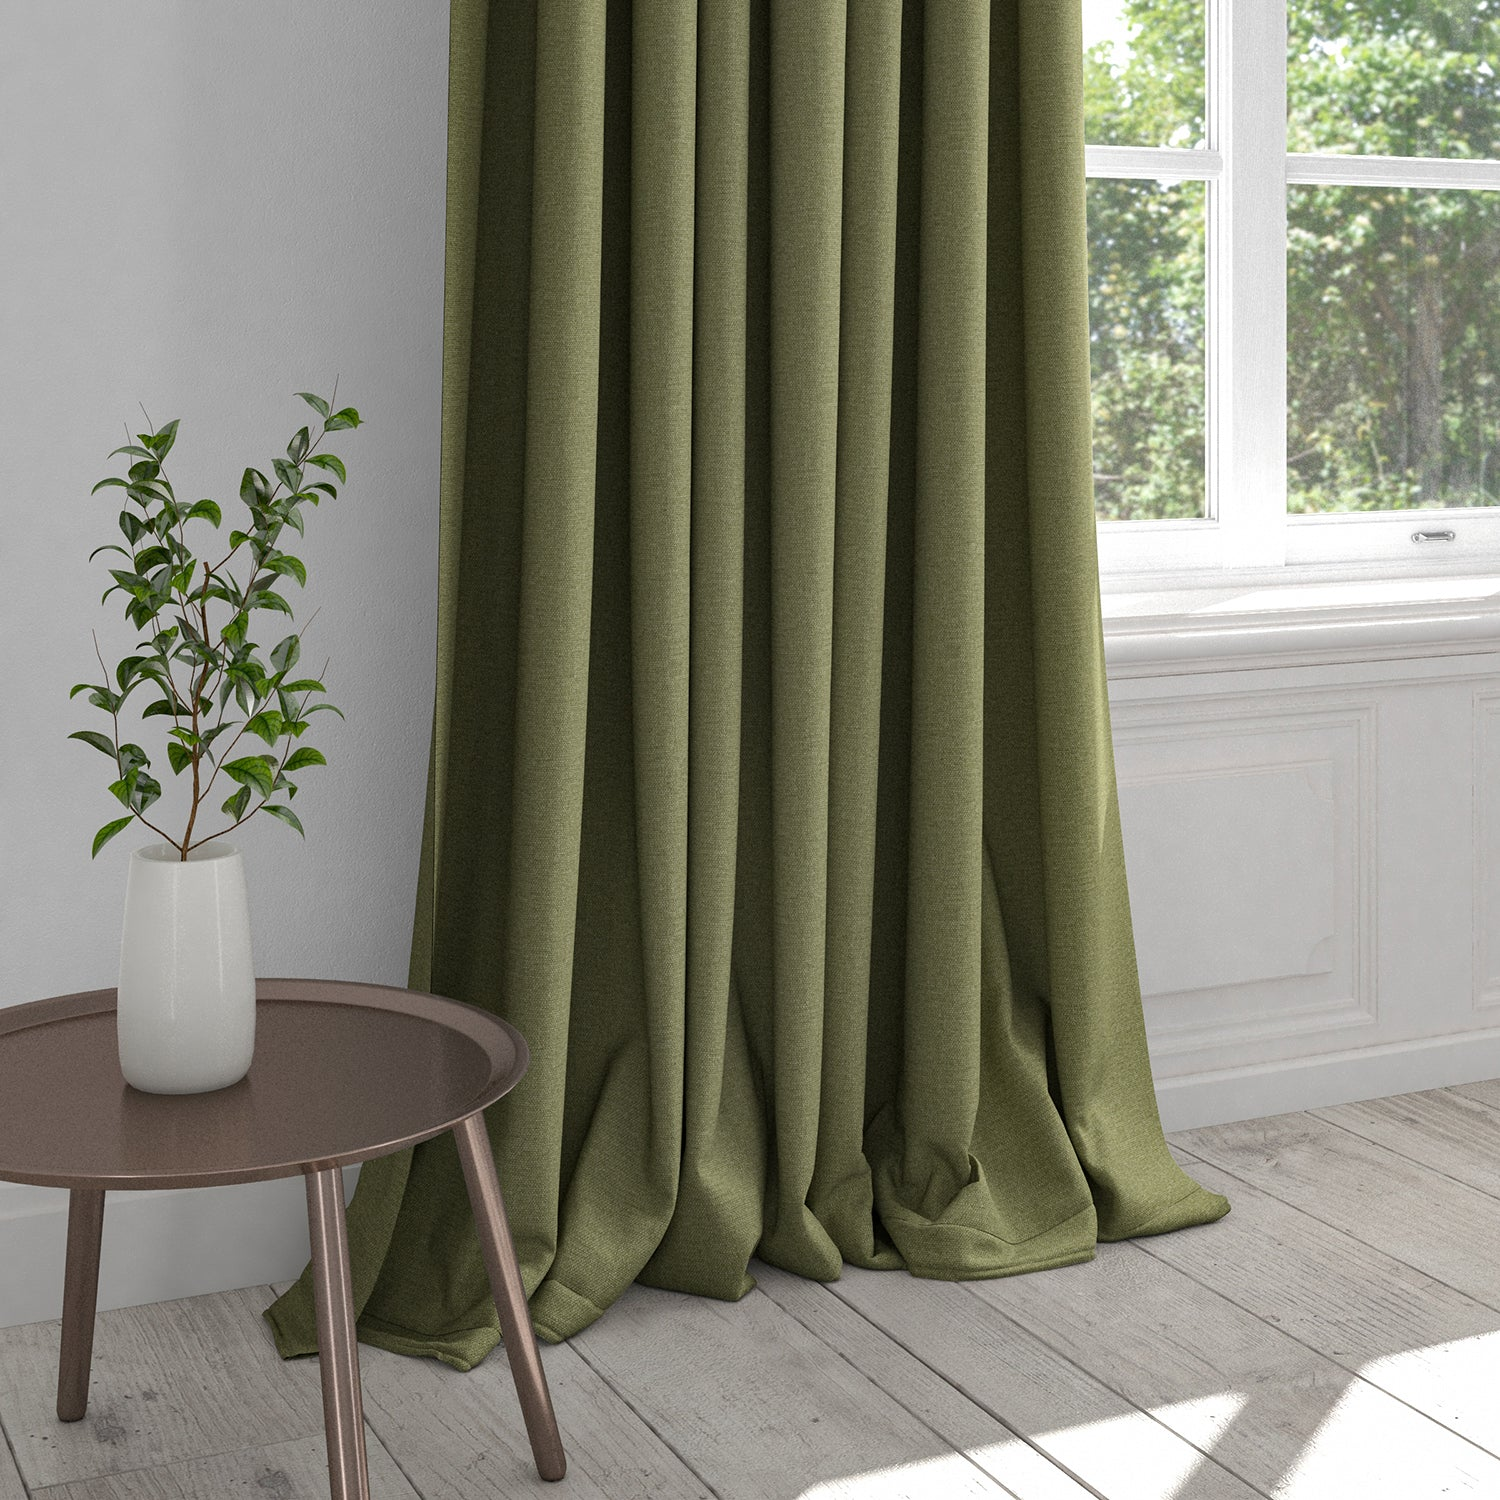 Curtain in a plain khaki green cotton fabric